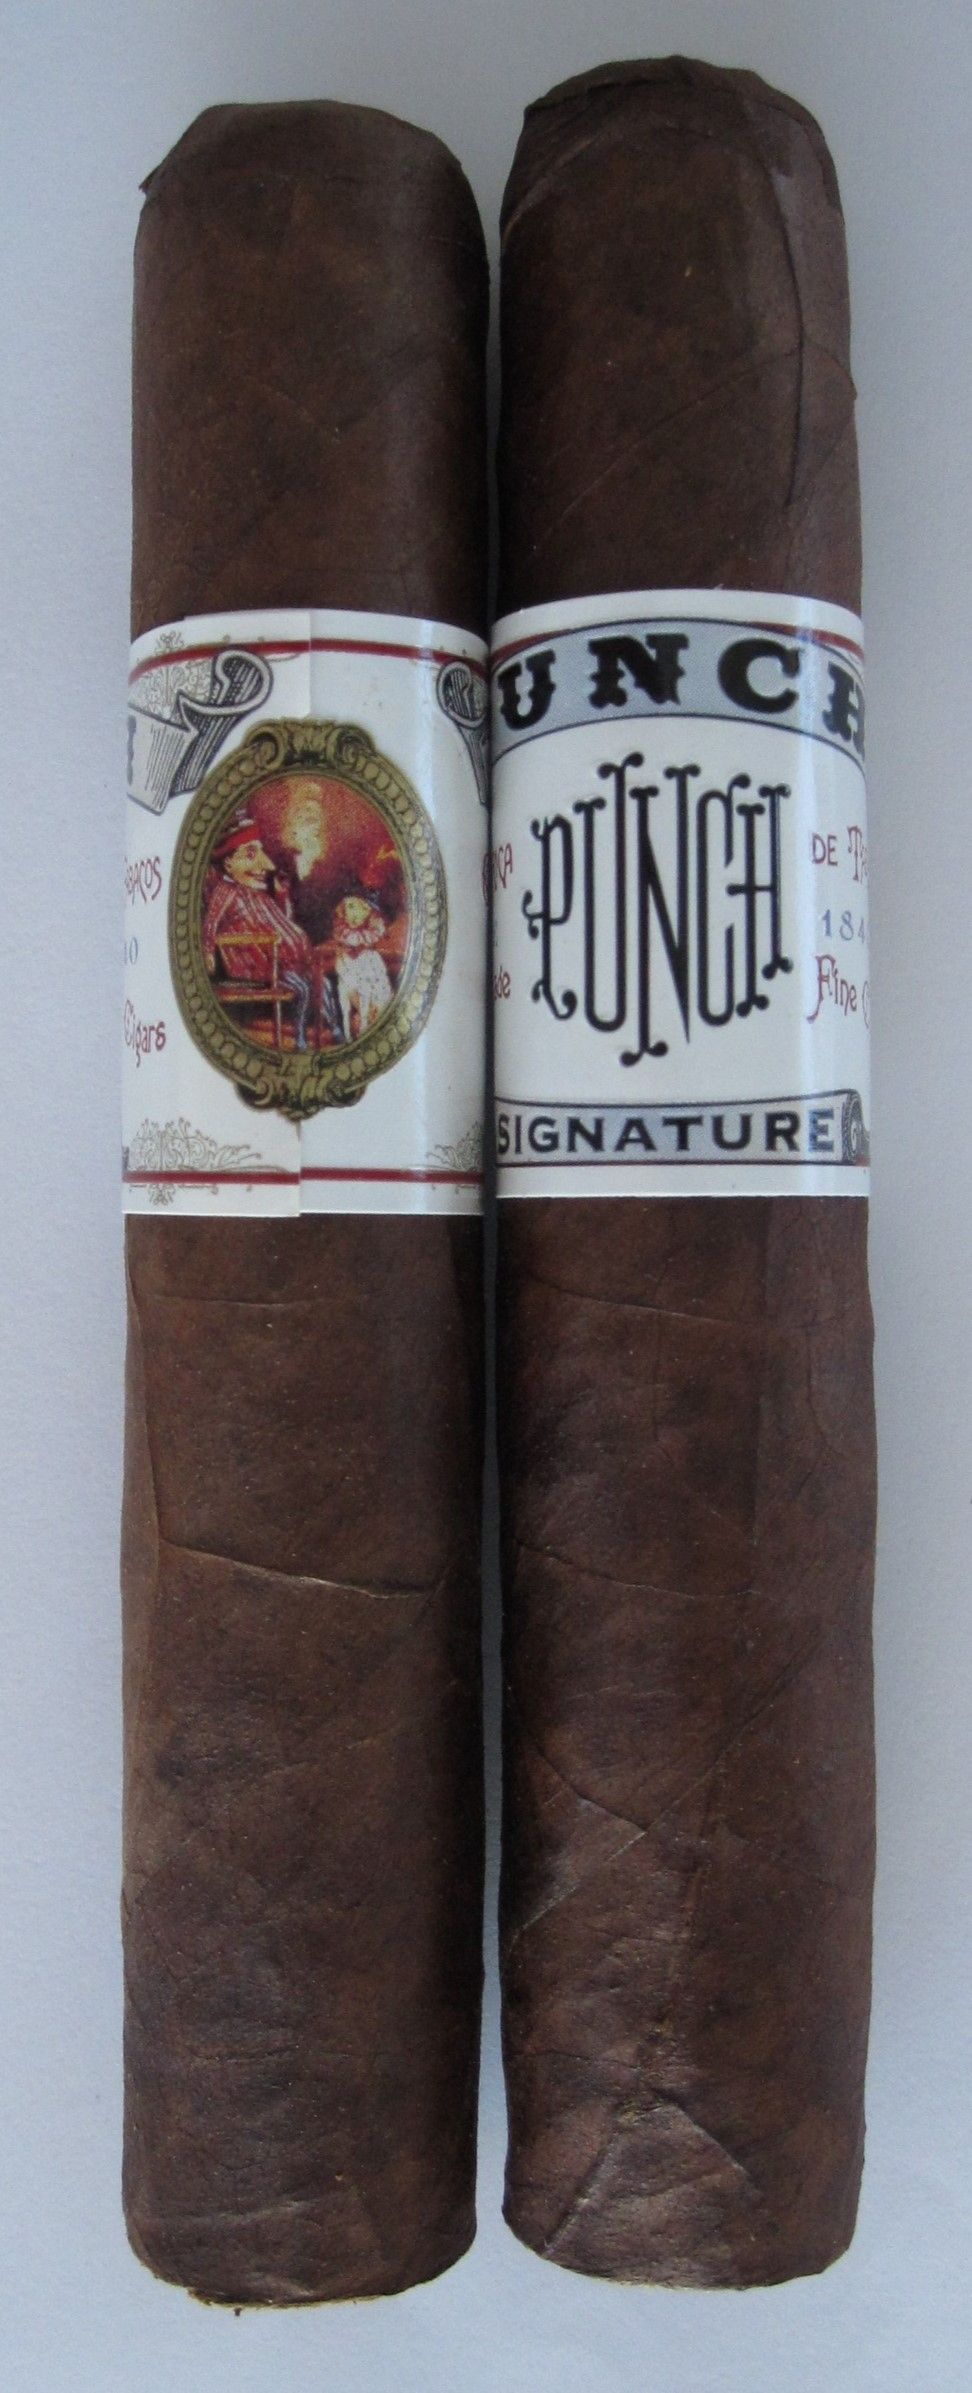 Punch Signature Cigar